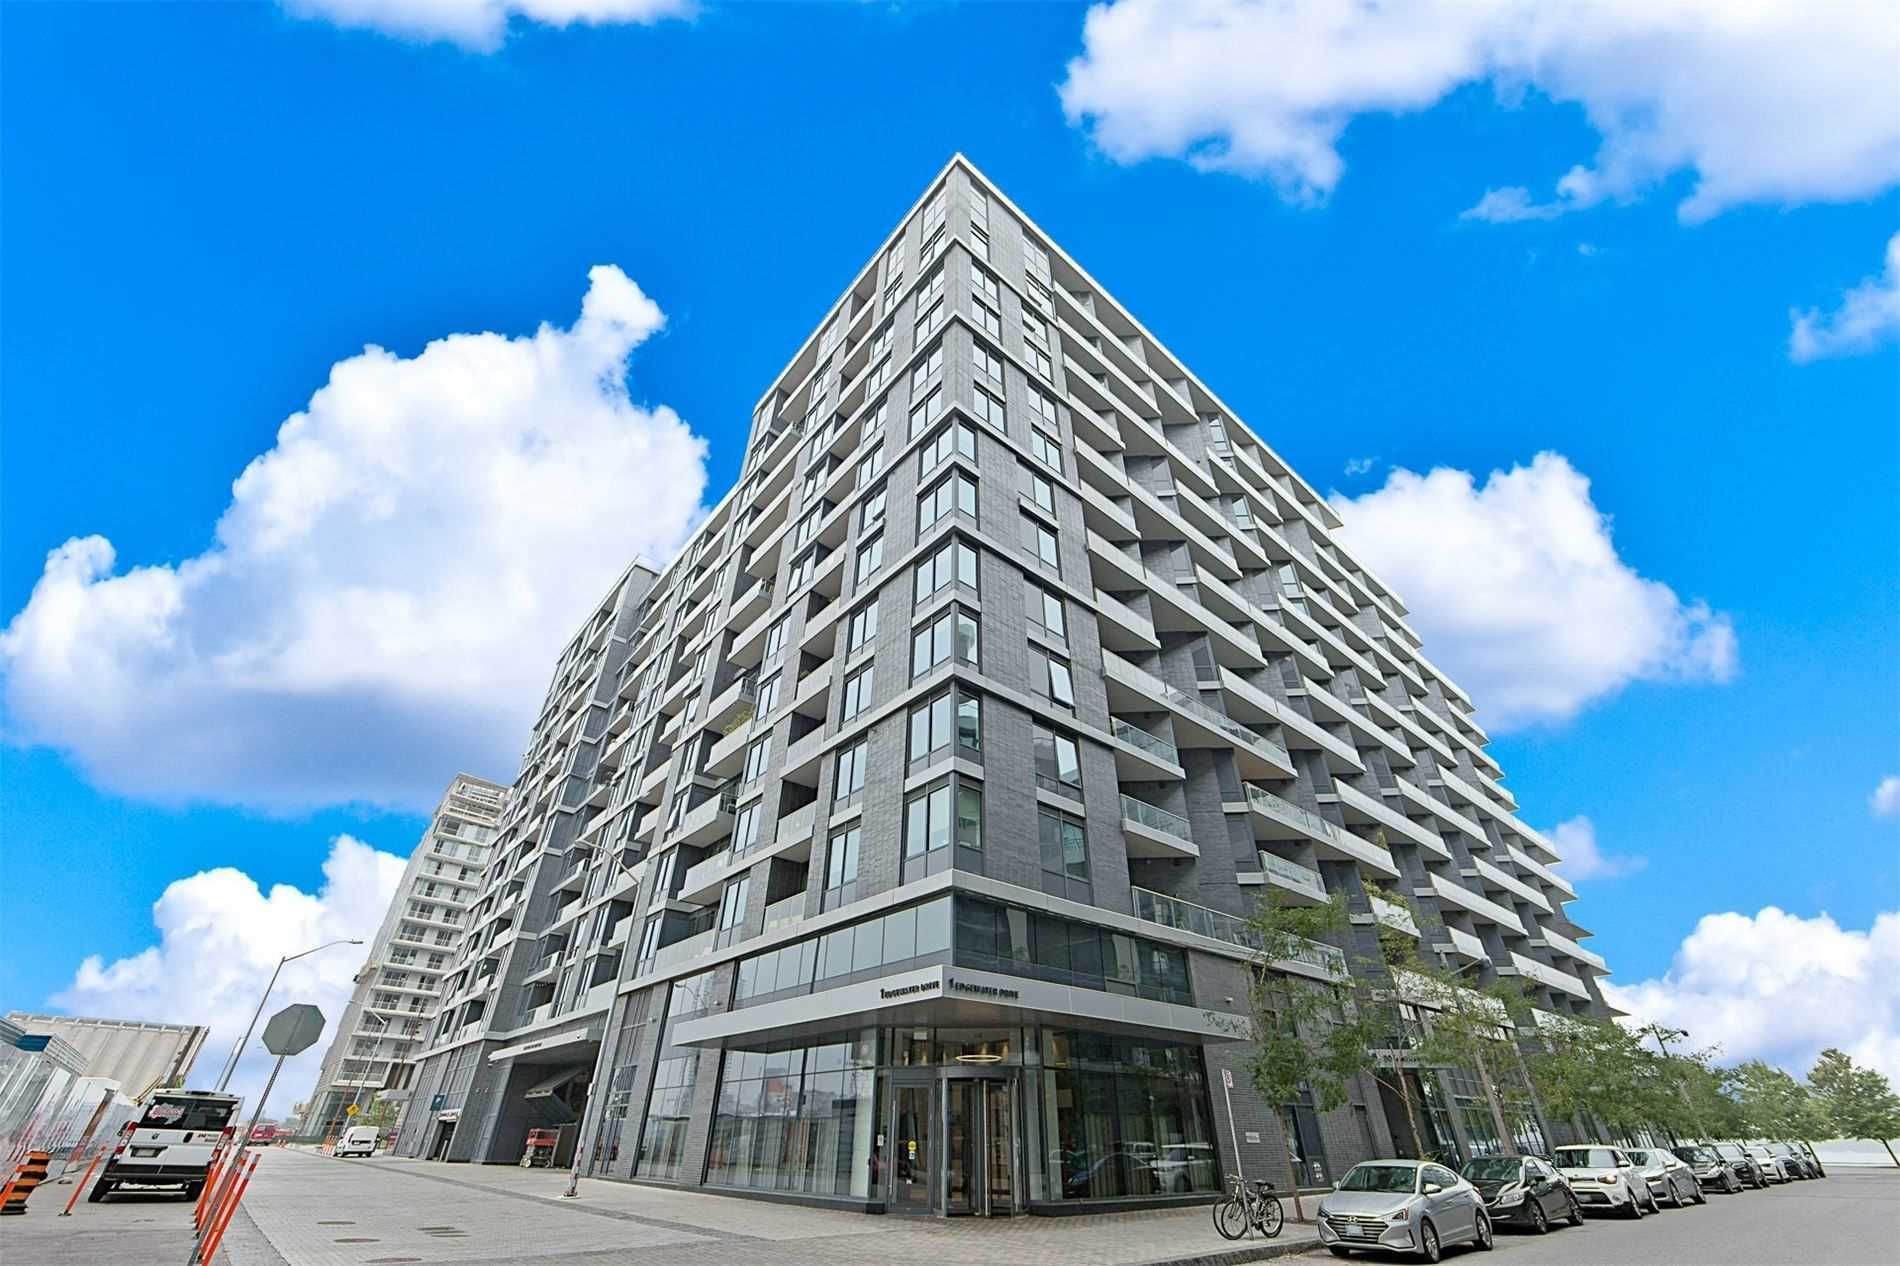 1 Edgewater Dr, unit 502 for sale in Toronto - image #2